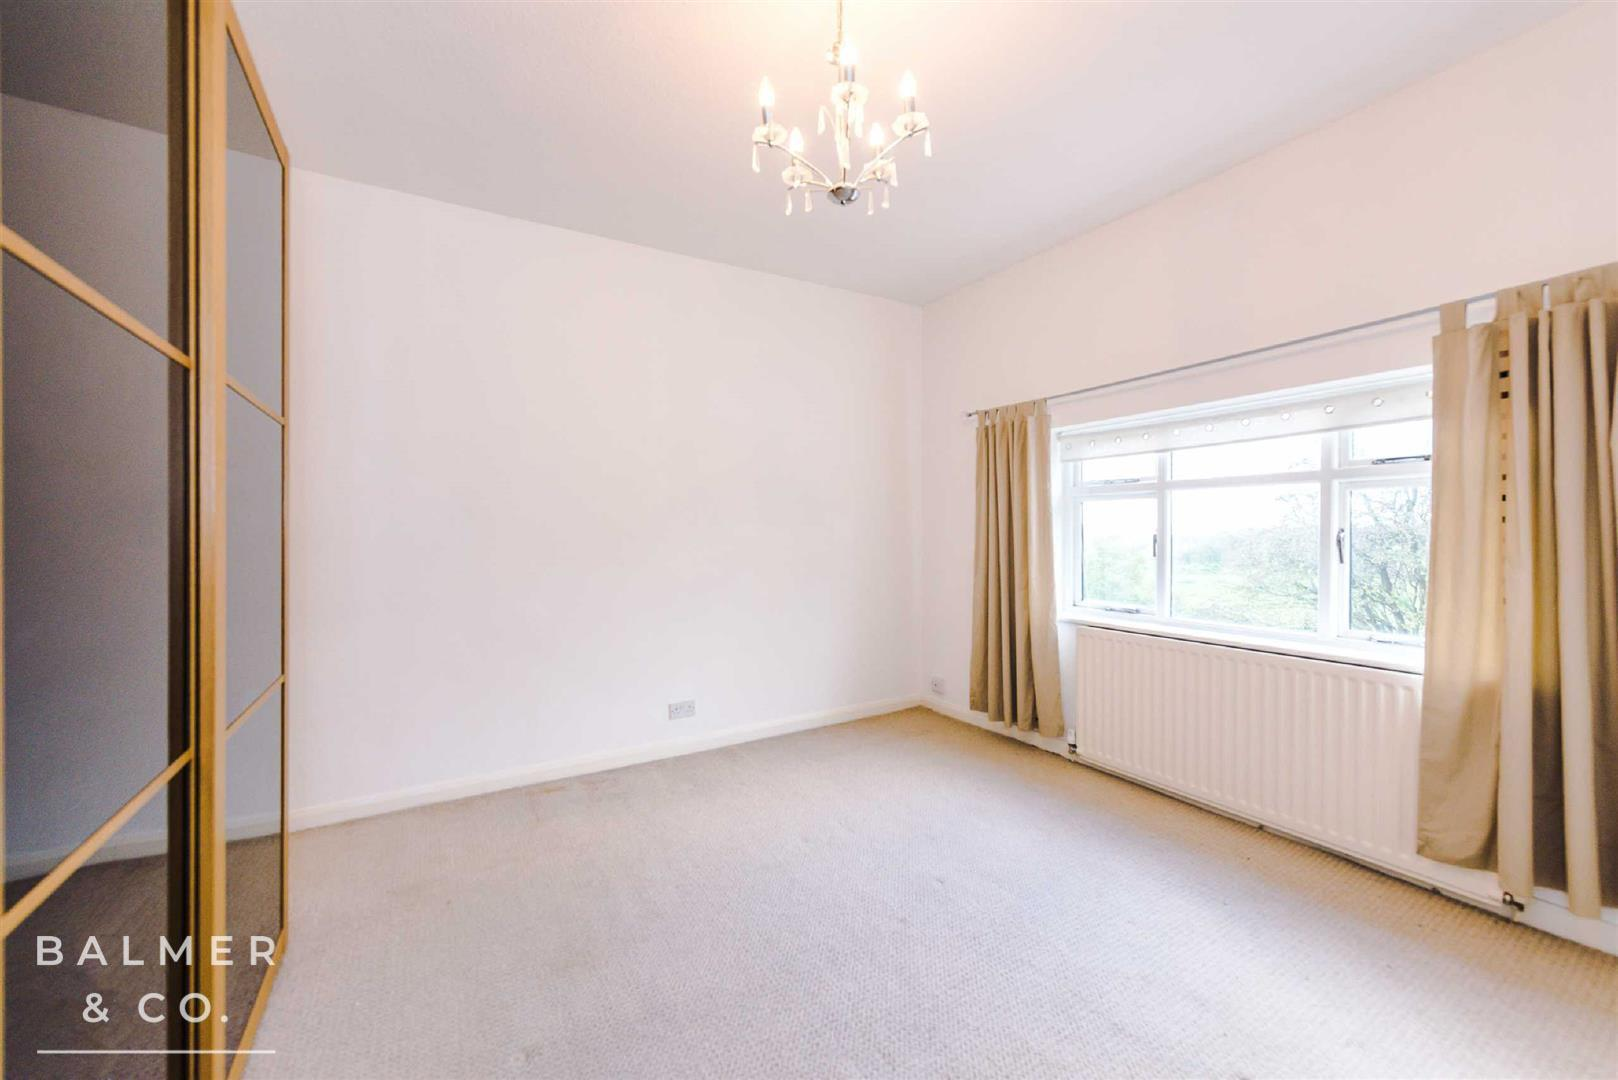 Property for Sale Mill Lane, Westhoughton, Bolton, BL5